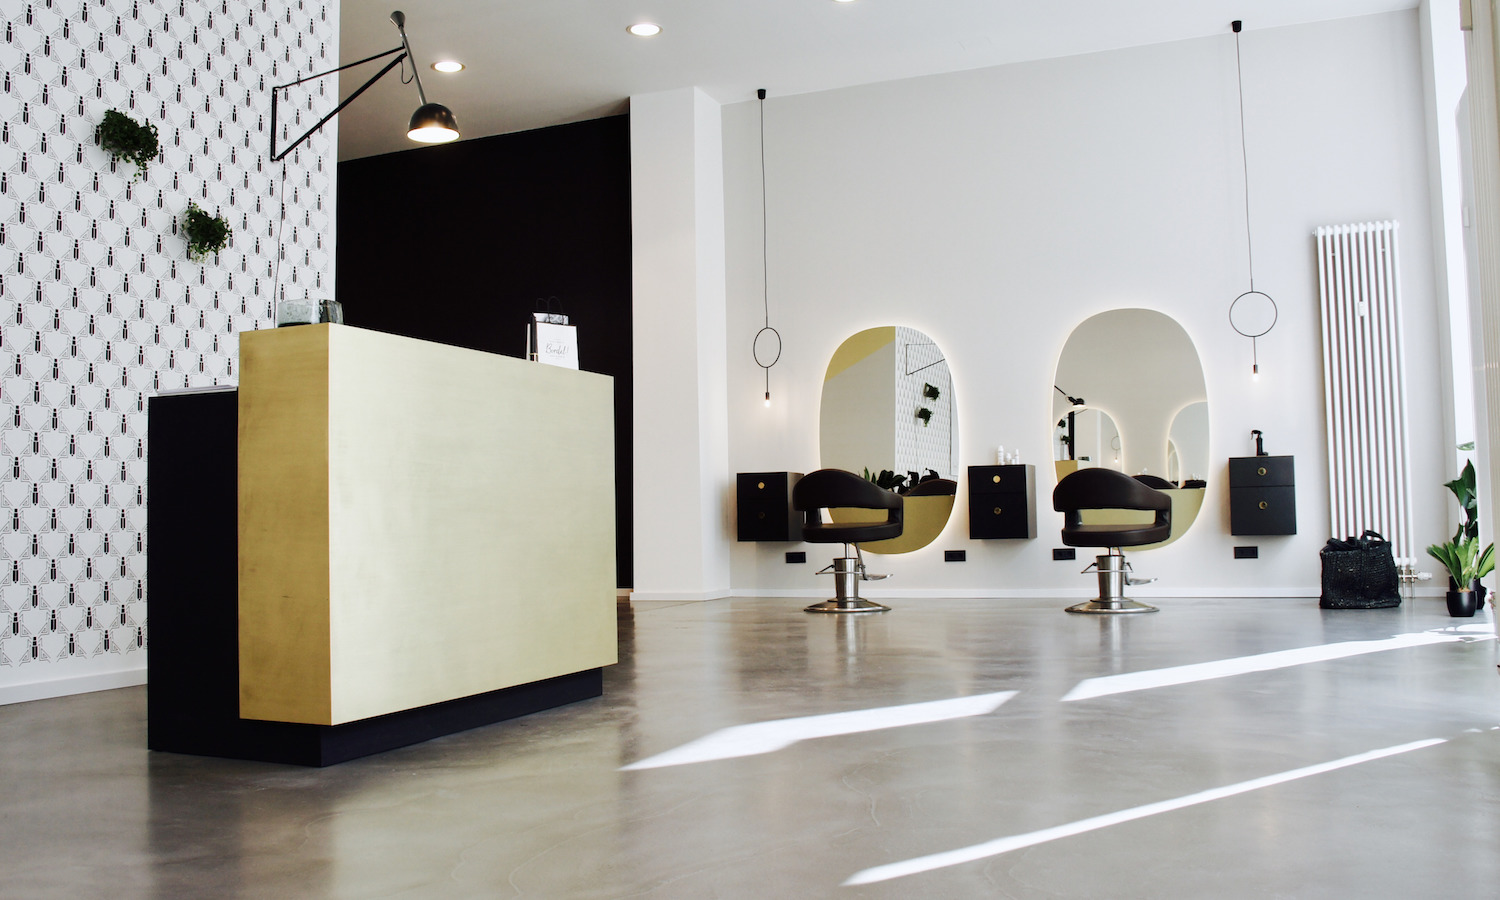 Beautyblog Beautyblogger Elina Neumann Berlin Beauty Guide Friseursalon Bordel!_3